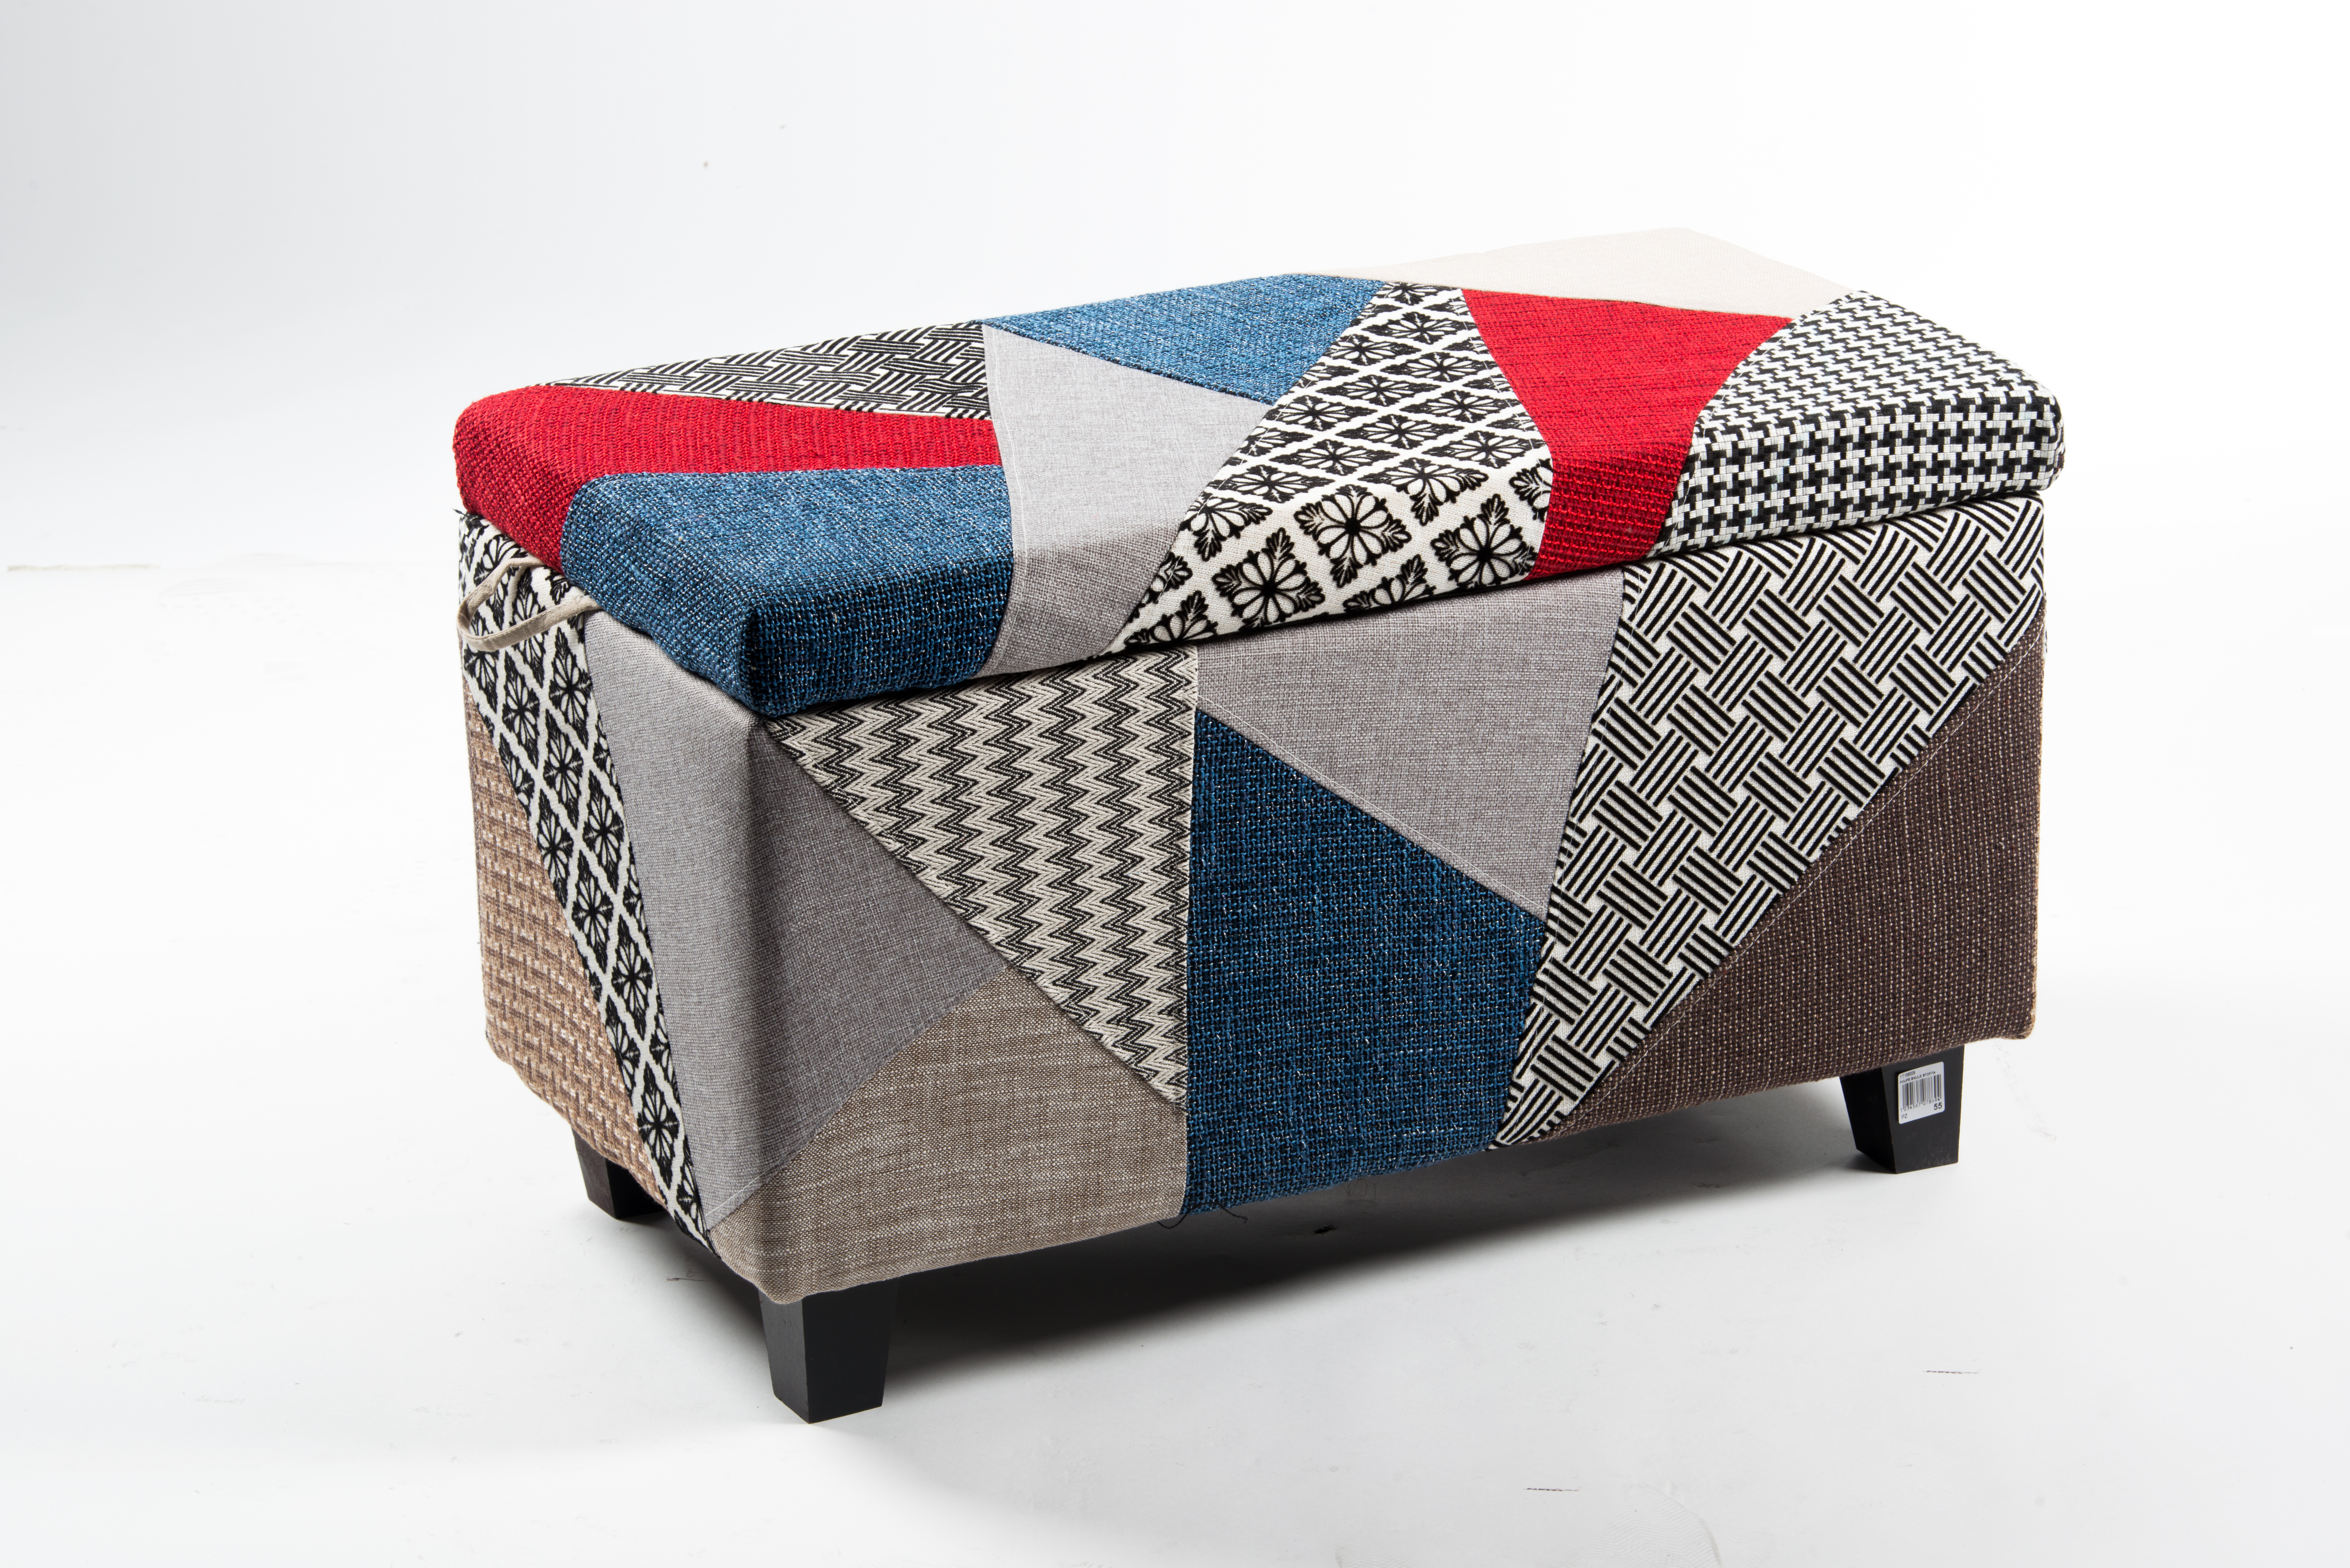 Categorie pouf e sgabelli way home store